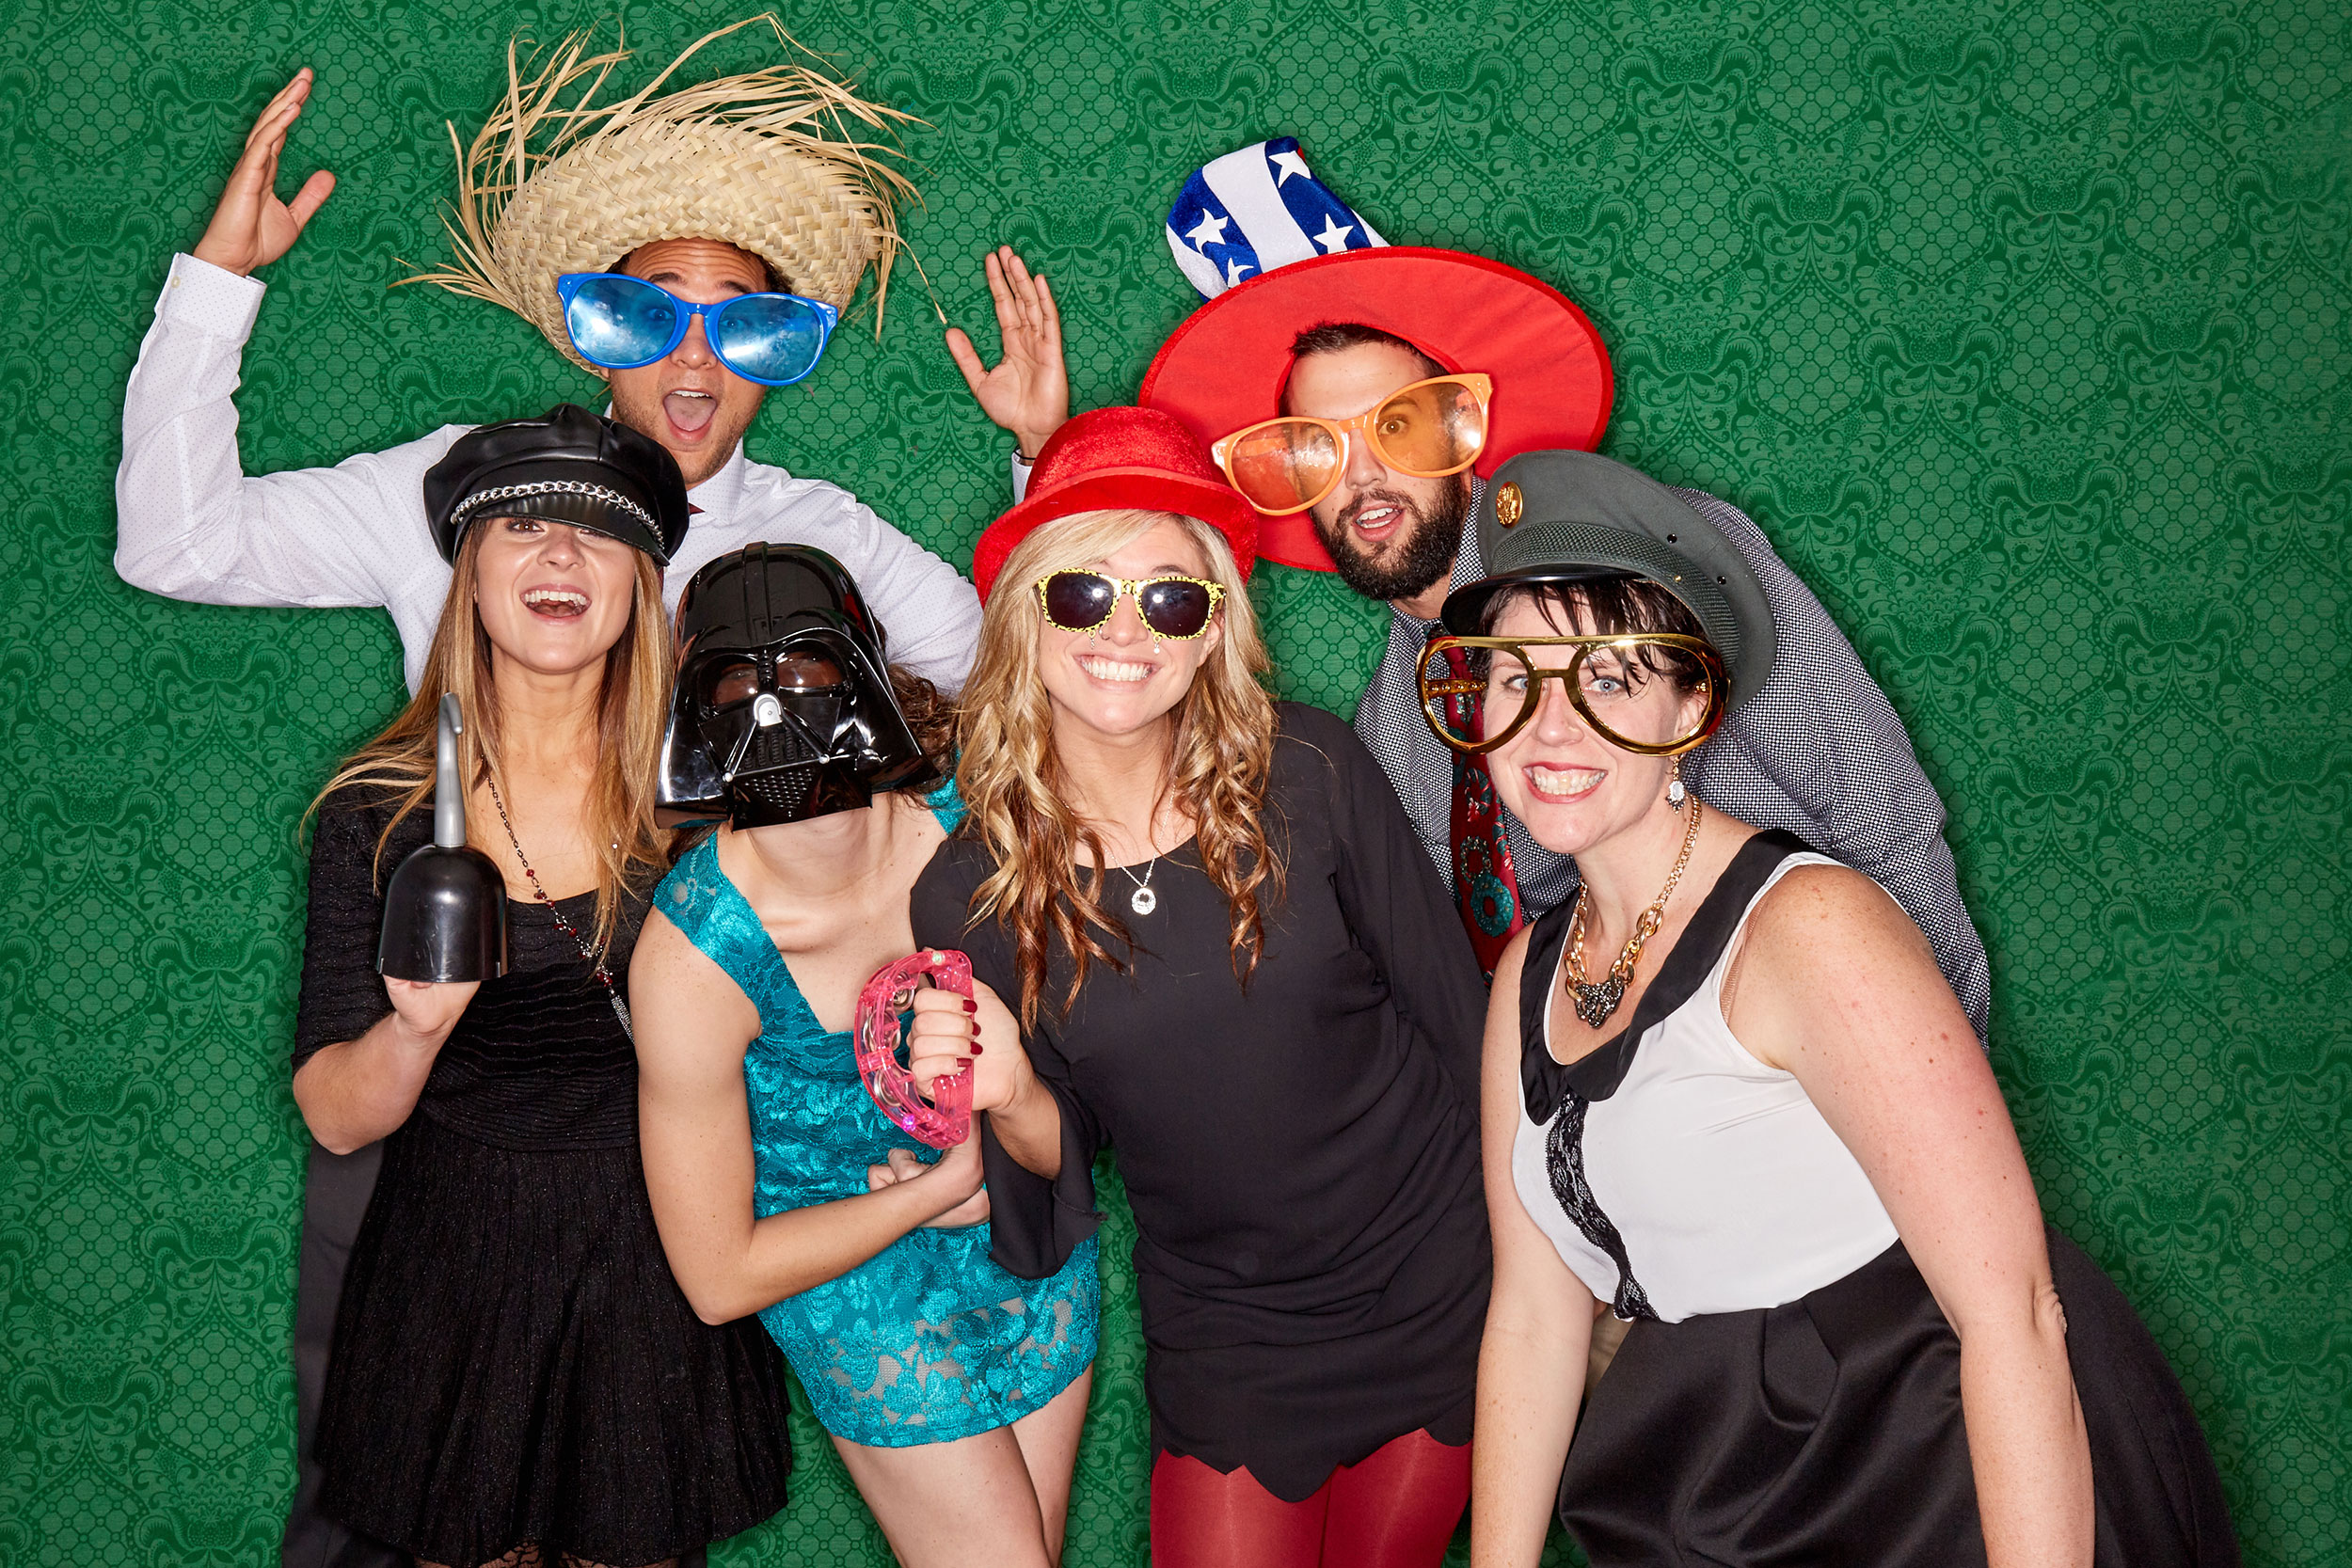 louisville-photo-booth-110.jpg